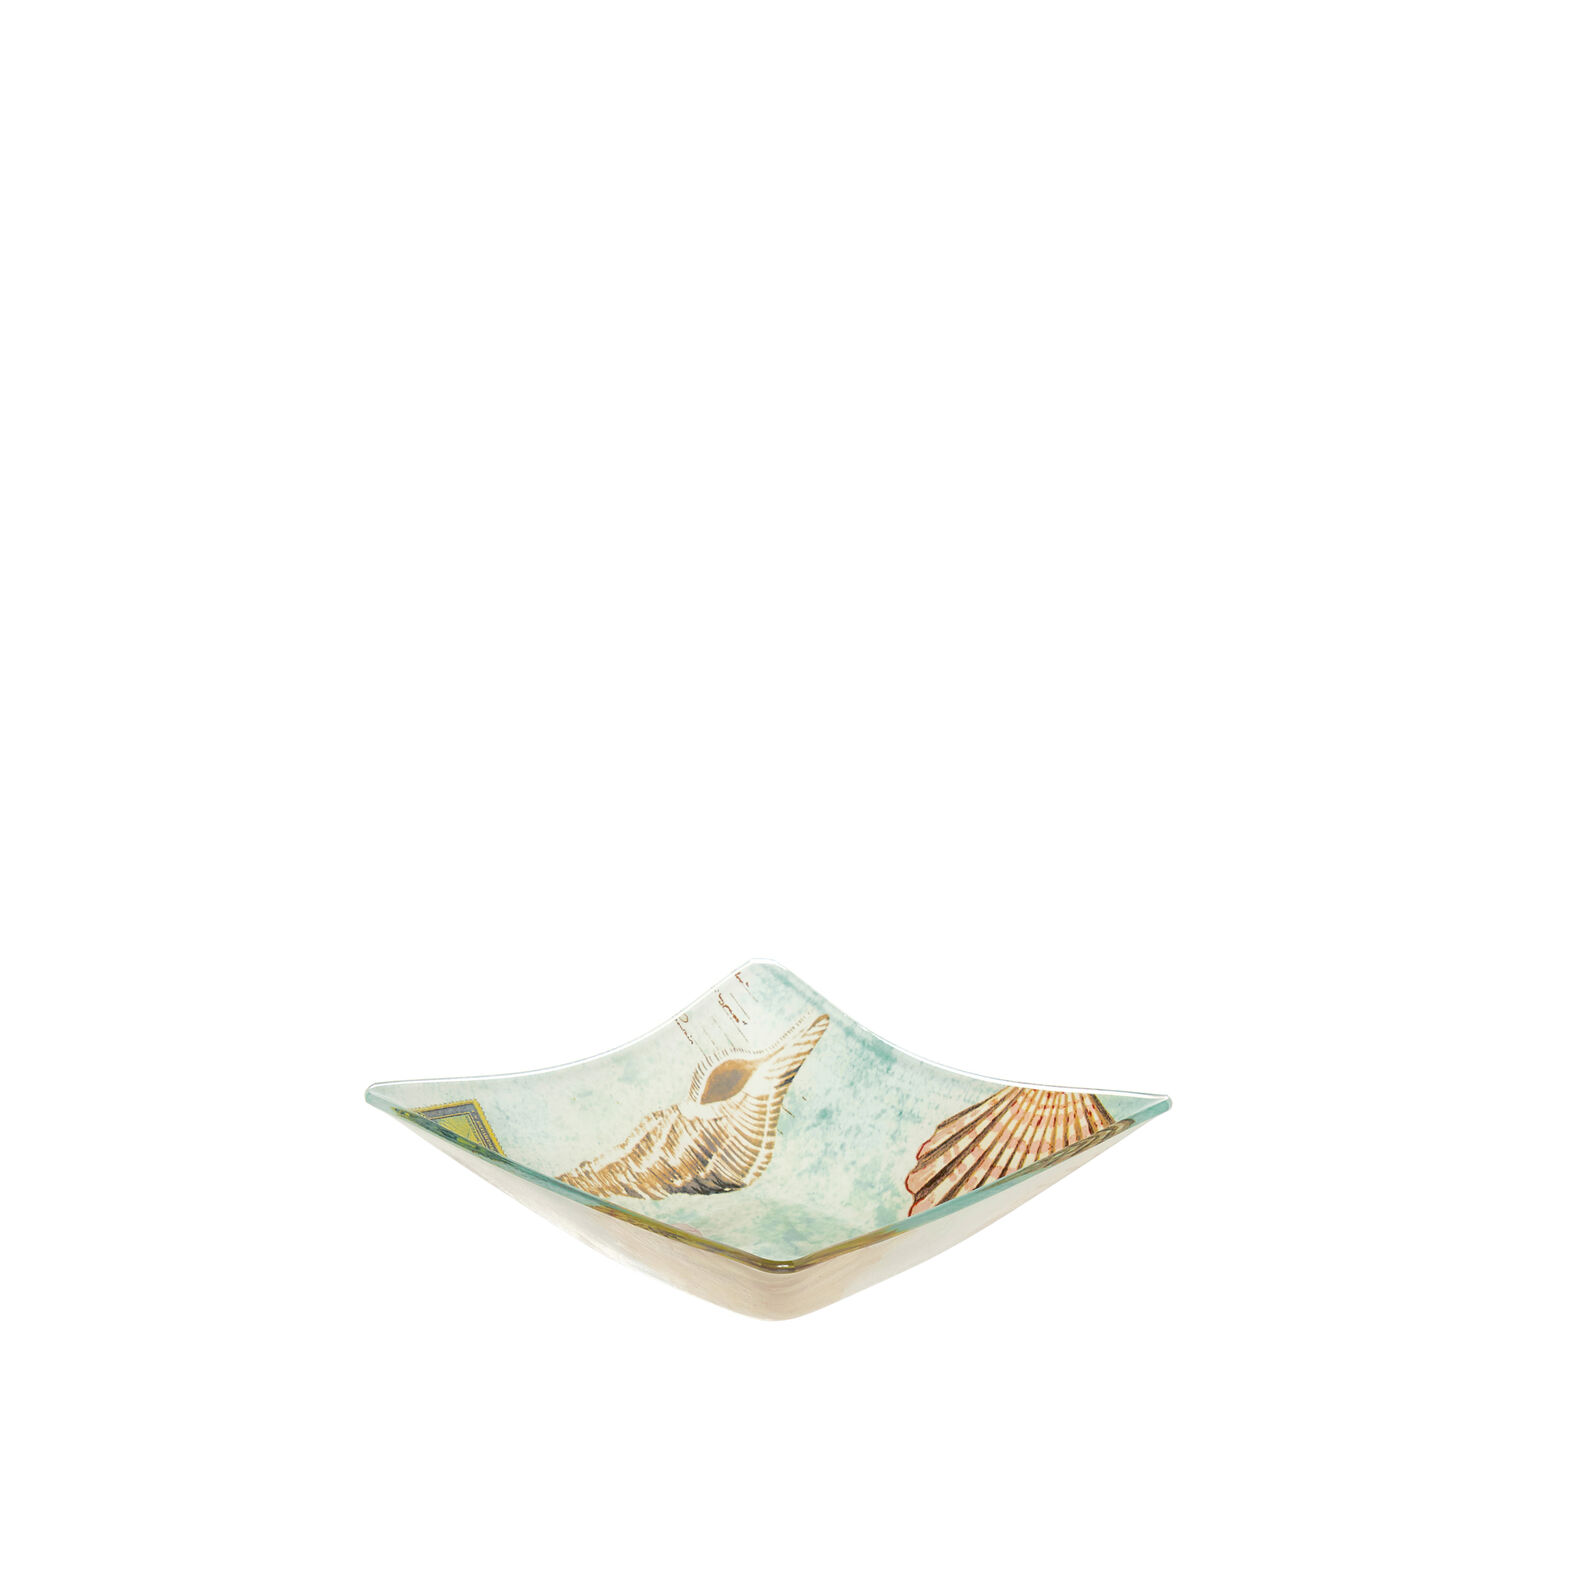 Small square bowl in glass with marine decoration